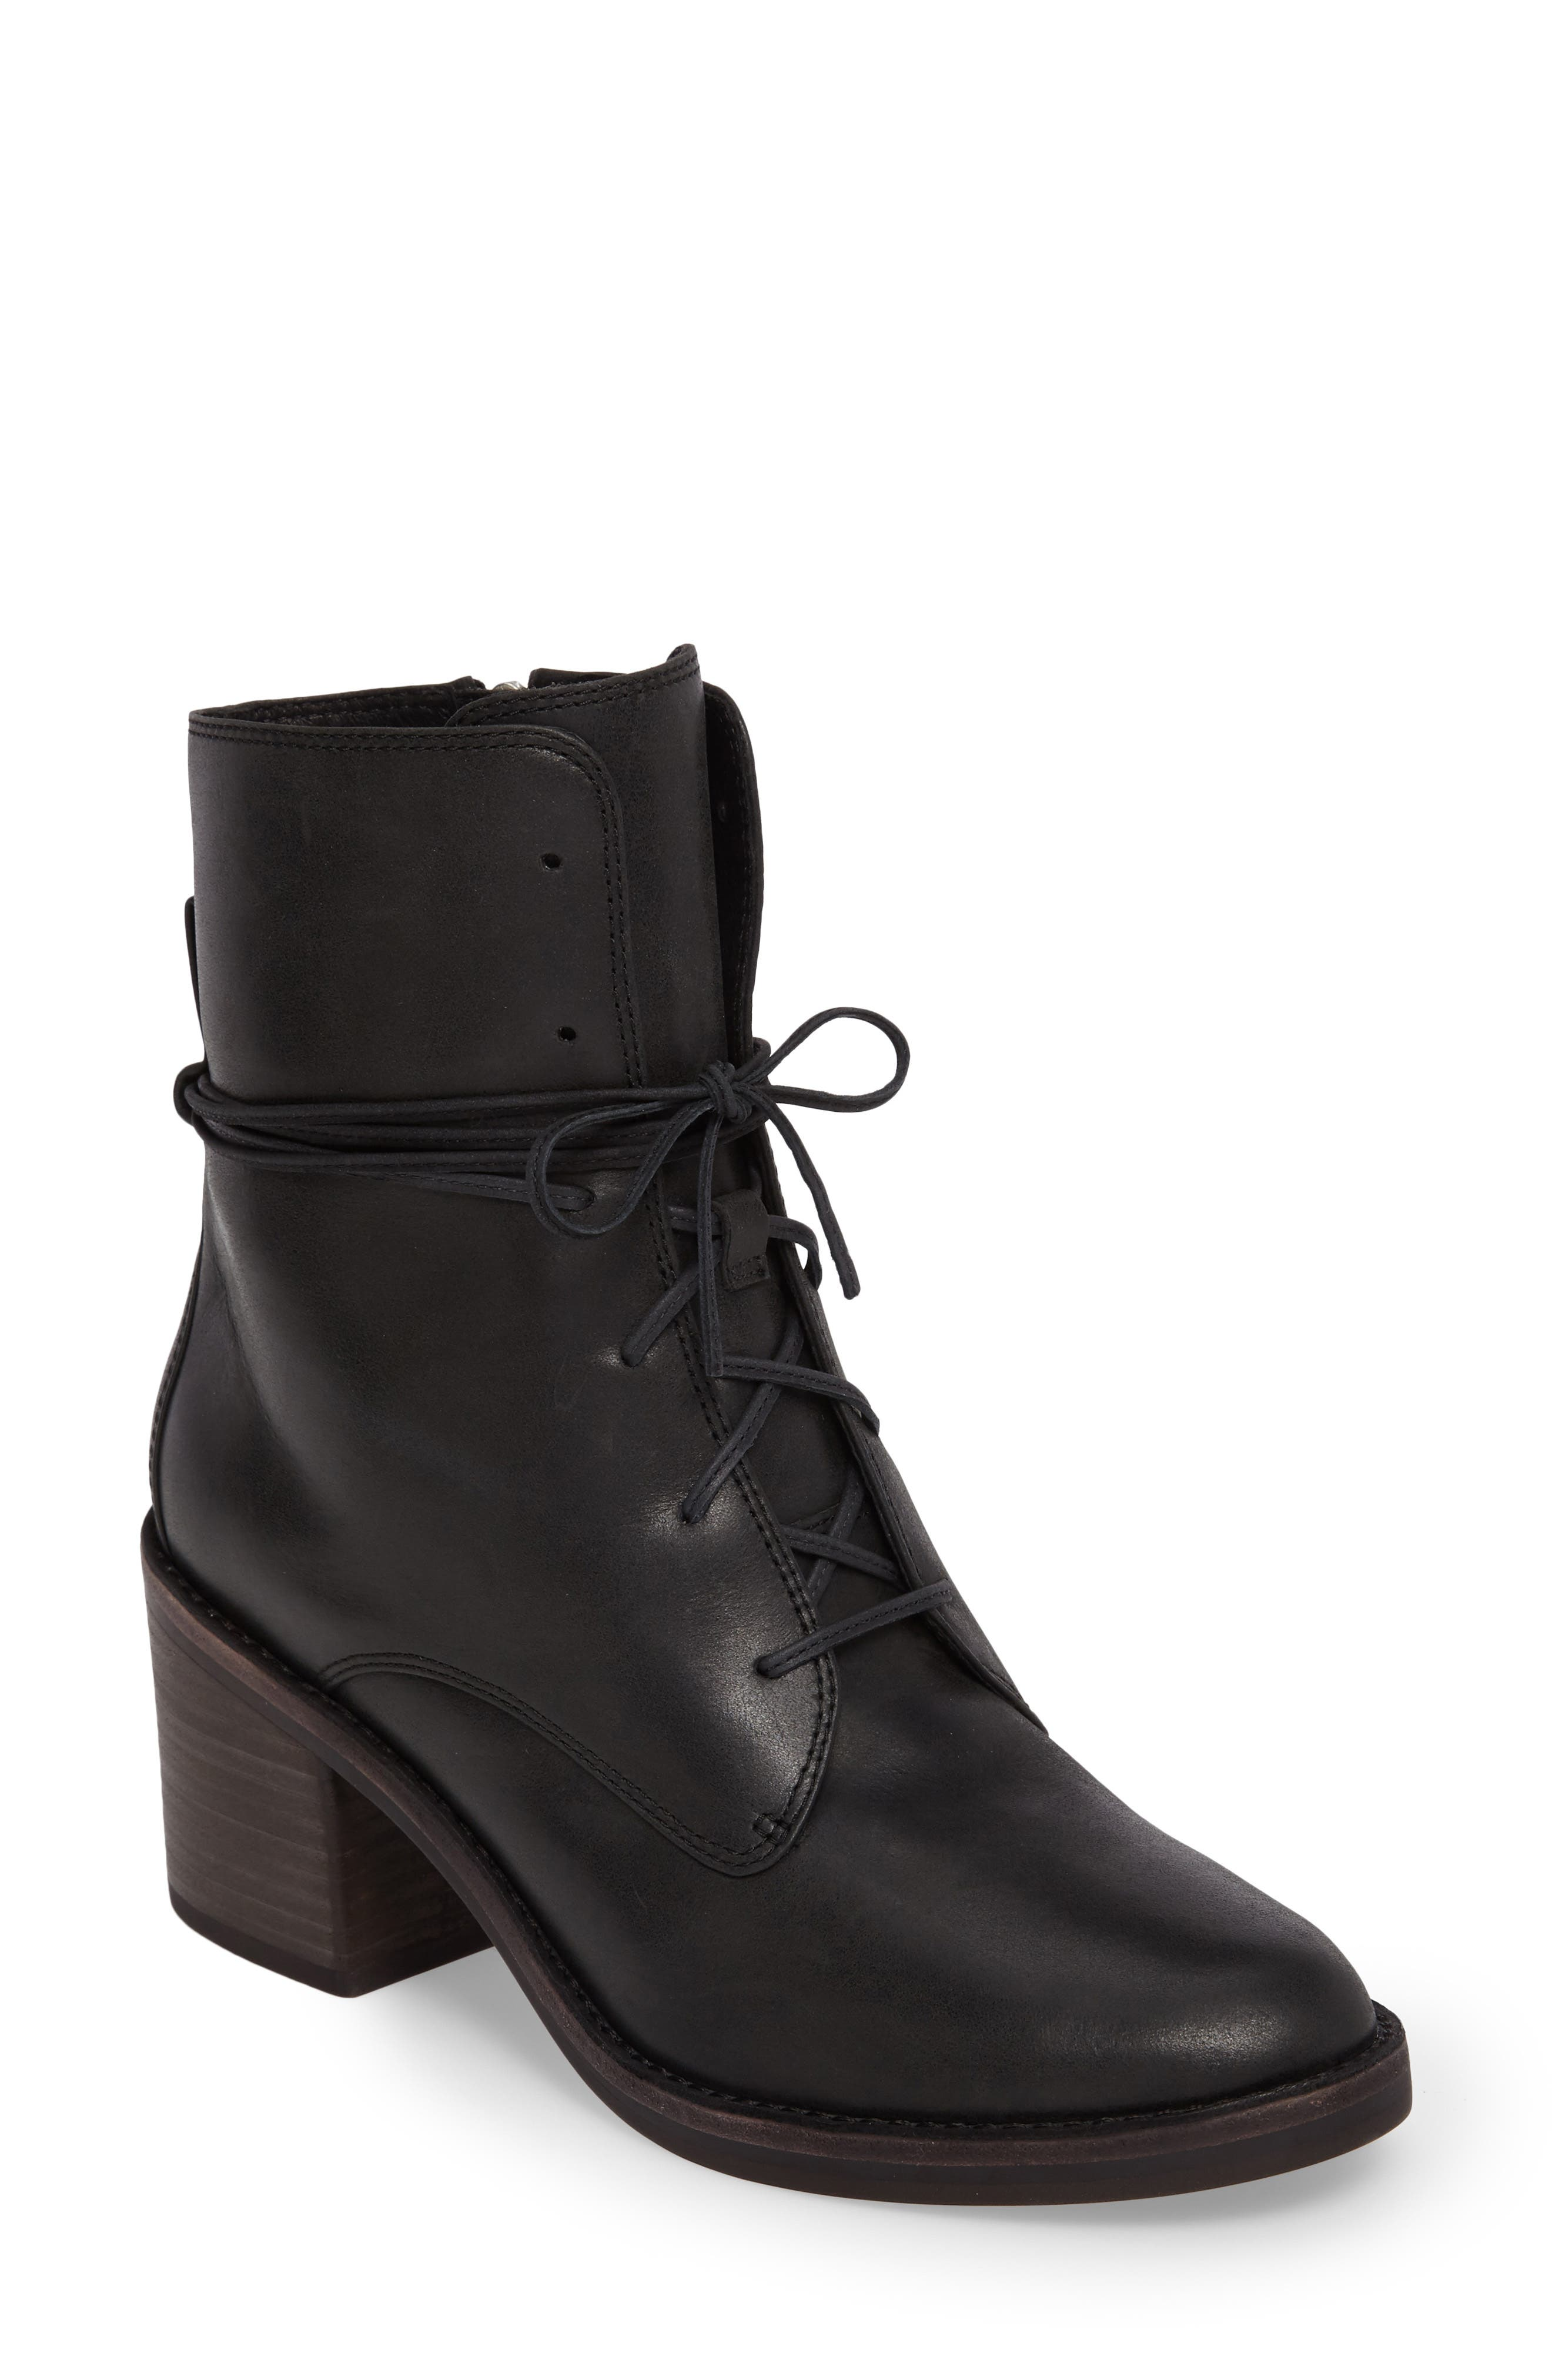 Oriana Lace-Up Boot,                             Main thumbnail 1, color,                             Black Leather